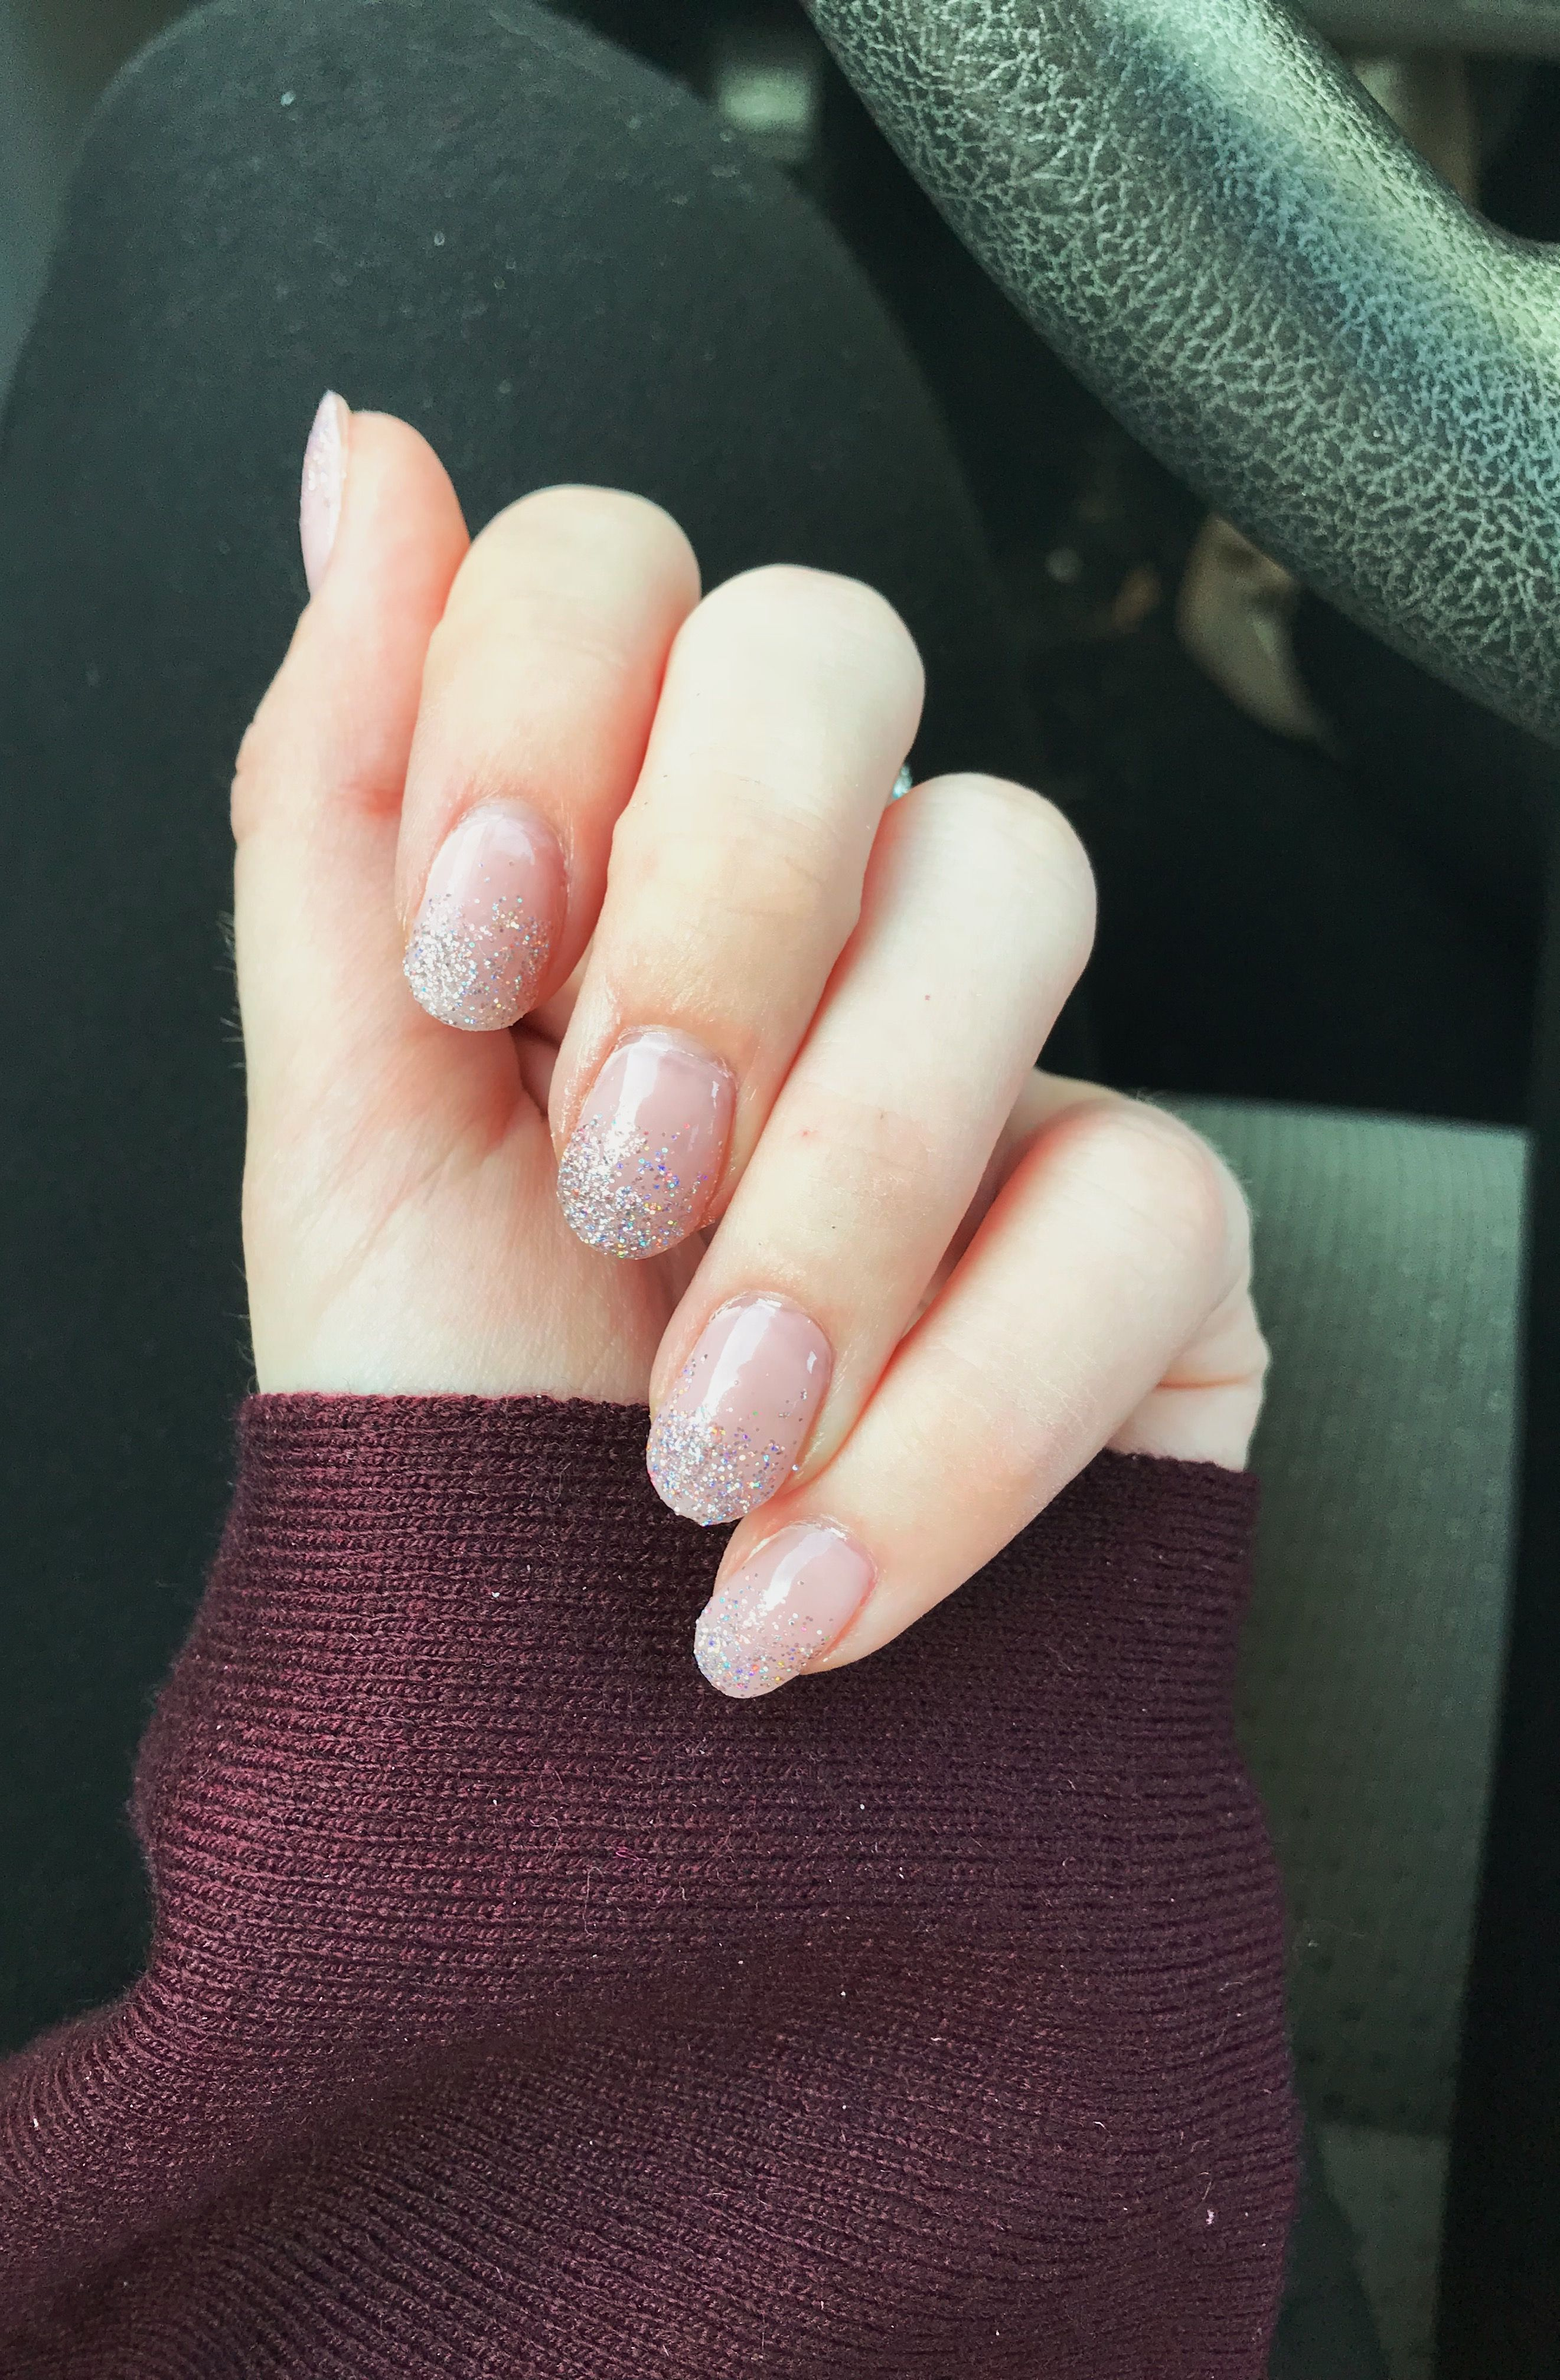 Oval Holiday Glitter Ombre Nails Ovalnails Ombrenails Ombre